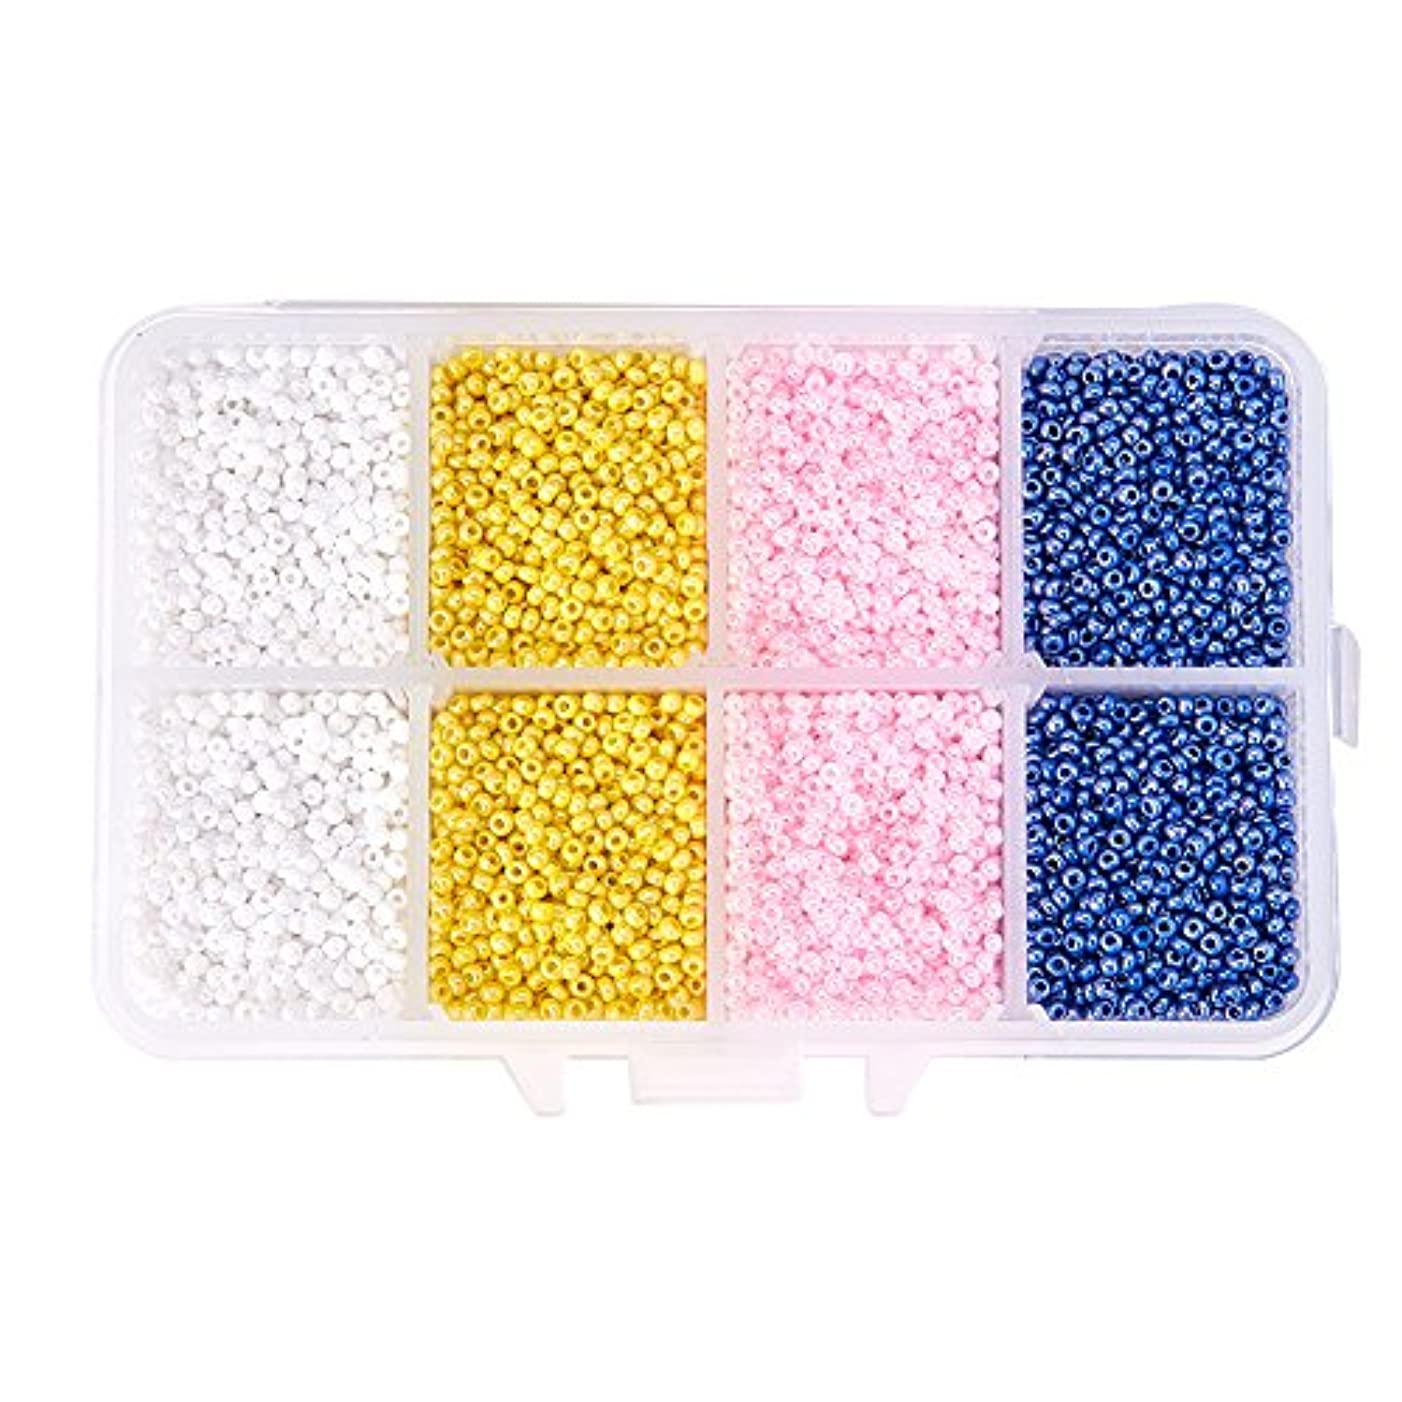 PandaHall Elite About 19000 Pcs 11/0 Glass Seed Beads Lined Pony Bead Tiny Spacer Beads Diameter 2mm with Container Box 4 Colors for Jewelry Making